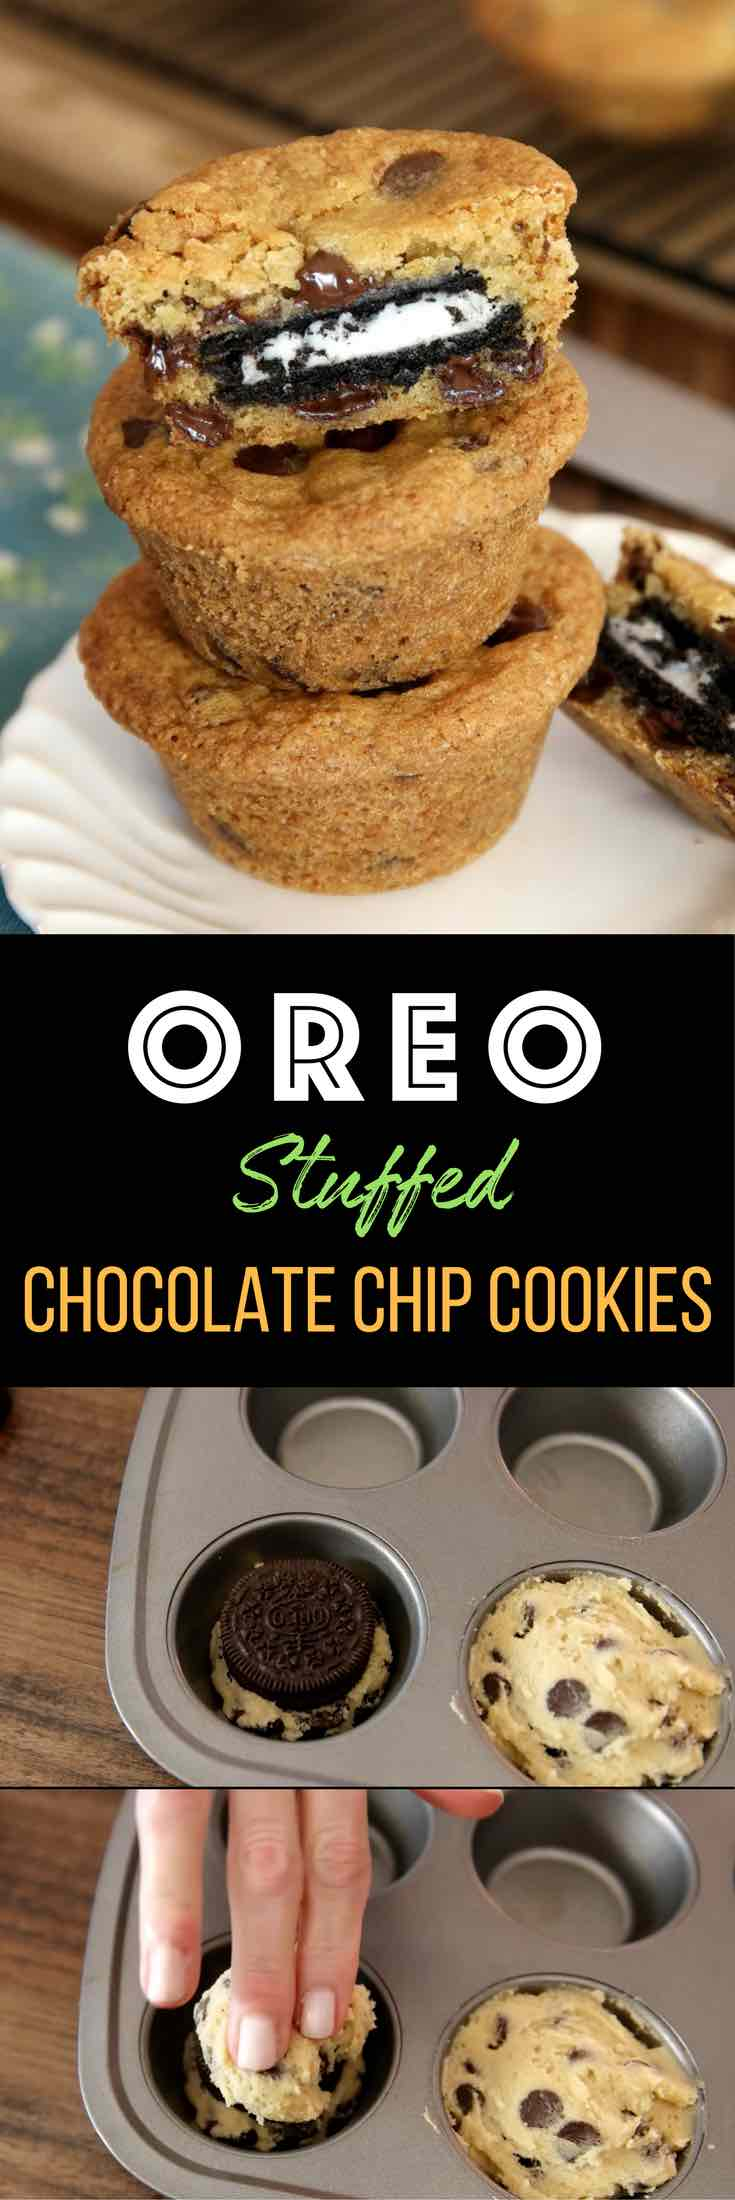 Oreo Stuffed Chocolate Chip Cookies – The BEST soft and chewy big chocolate chip cookies stuffed with Oreos! Quick and easy recipe that's so fun to make! All you need is your favorite chocolate chip cookie dough and Oreos! So simple and so delicious! It's great for snacks, parties, or dessert! Great for gifts too! Video recipe. | Tipbuzz.com